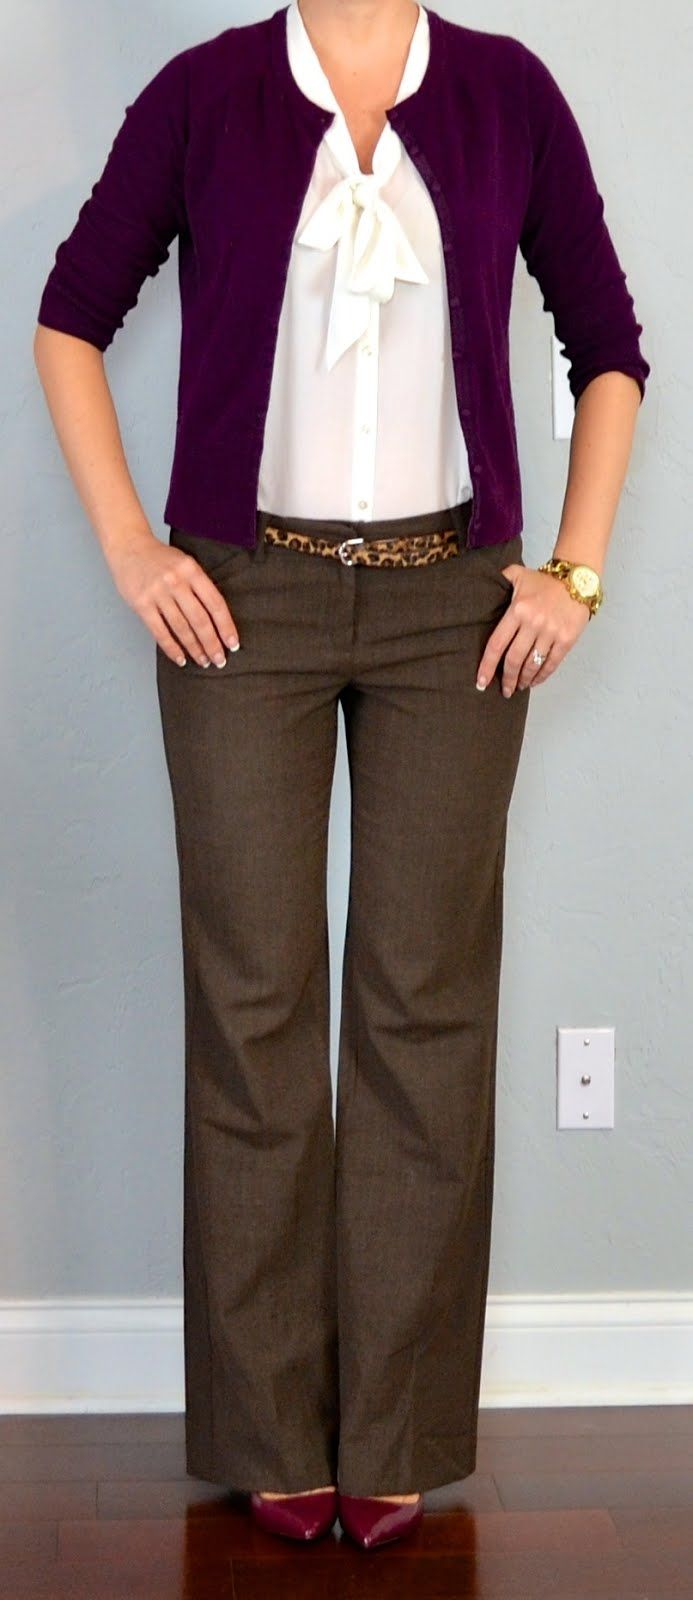 outfit post: burgundy cardigan, white tie blouse, brown 'editor ...